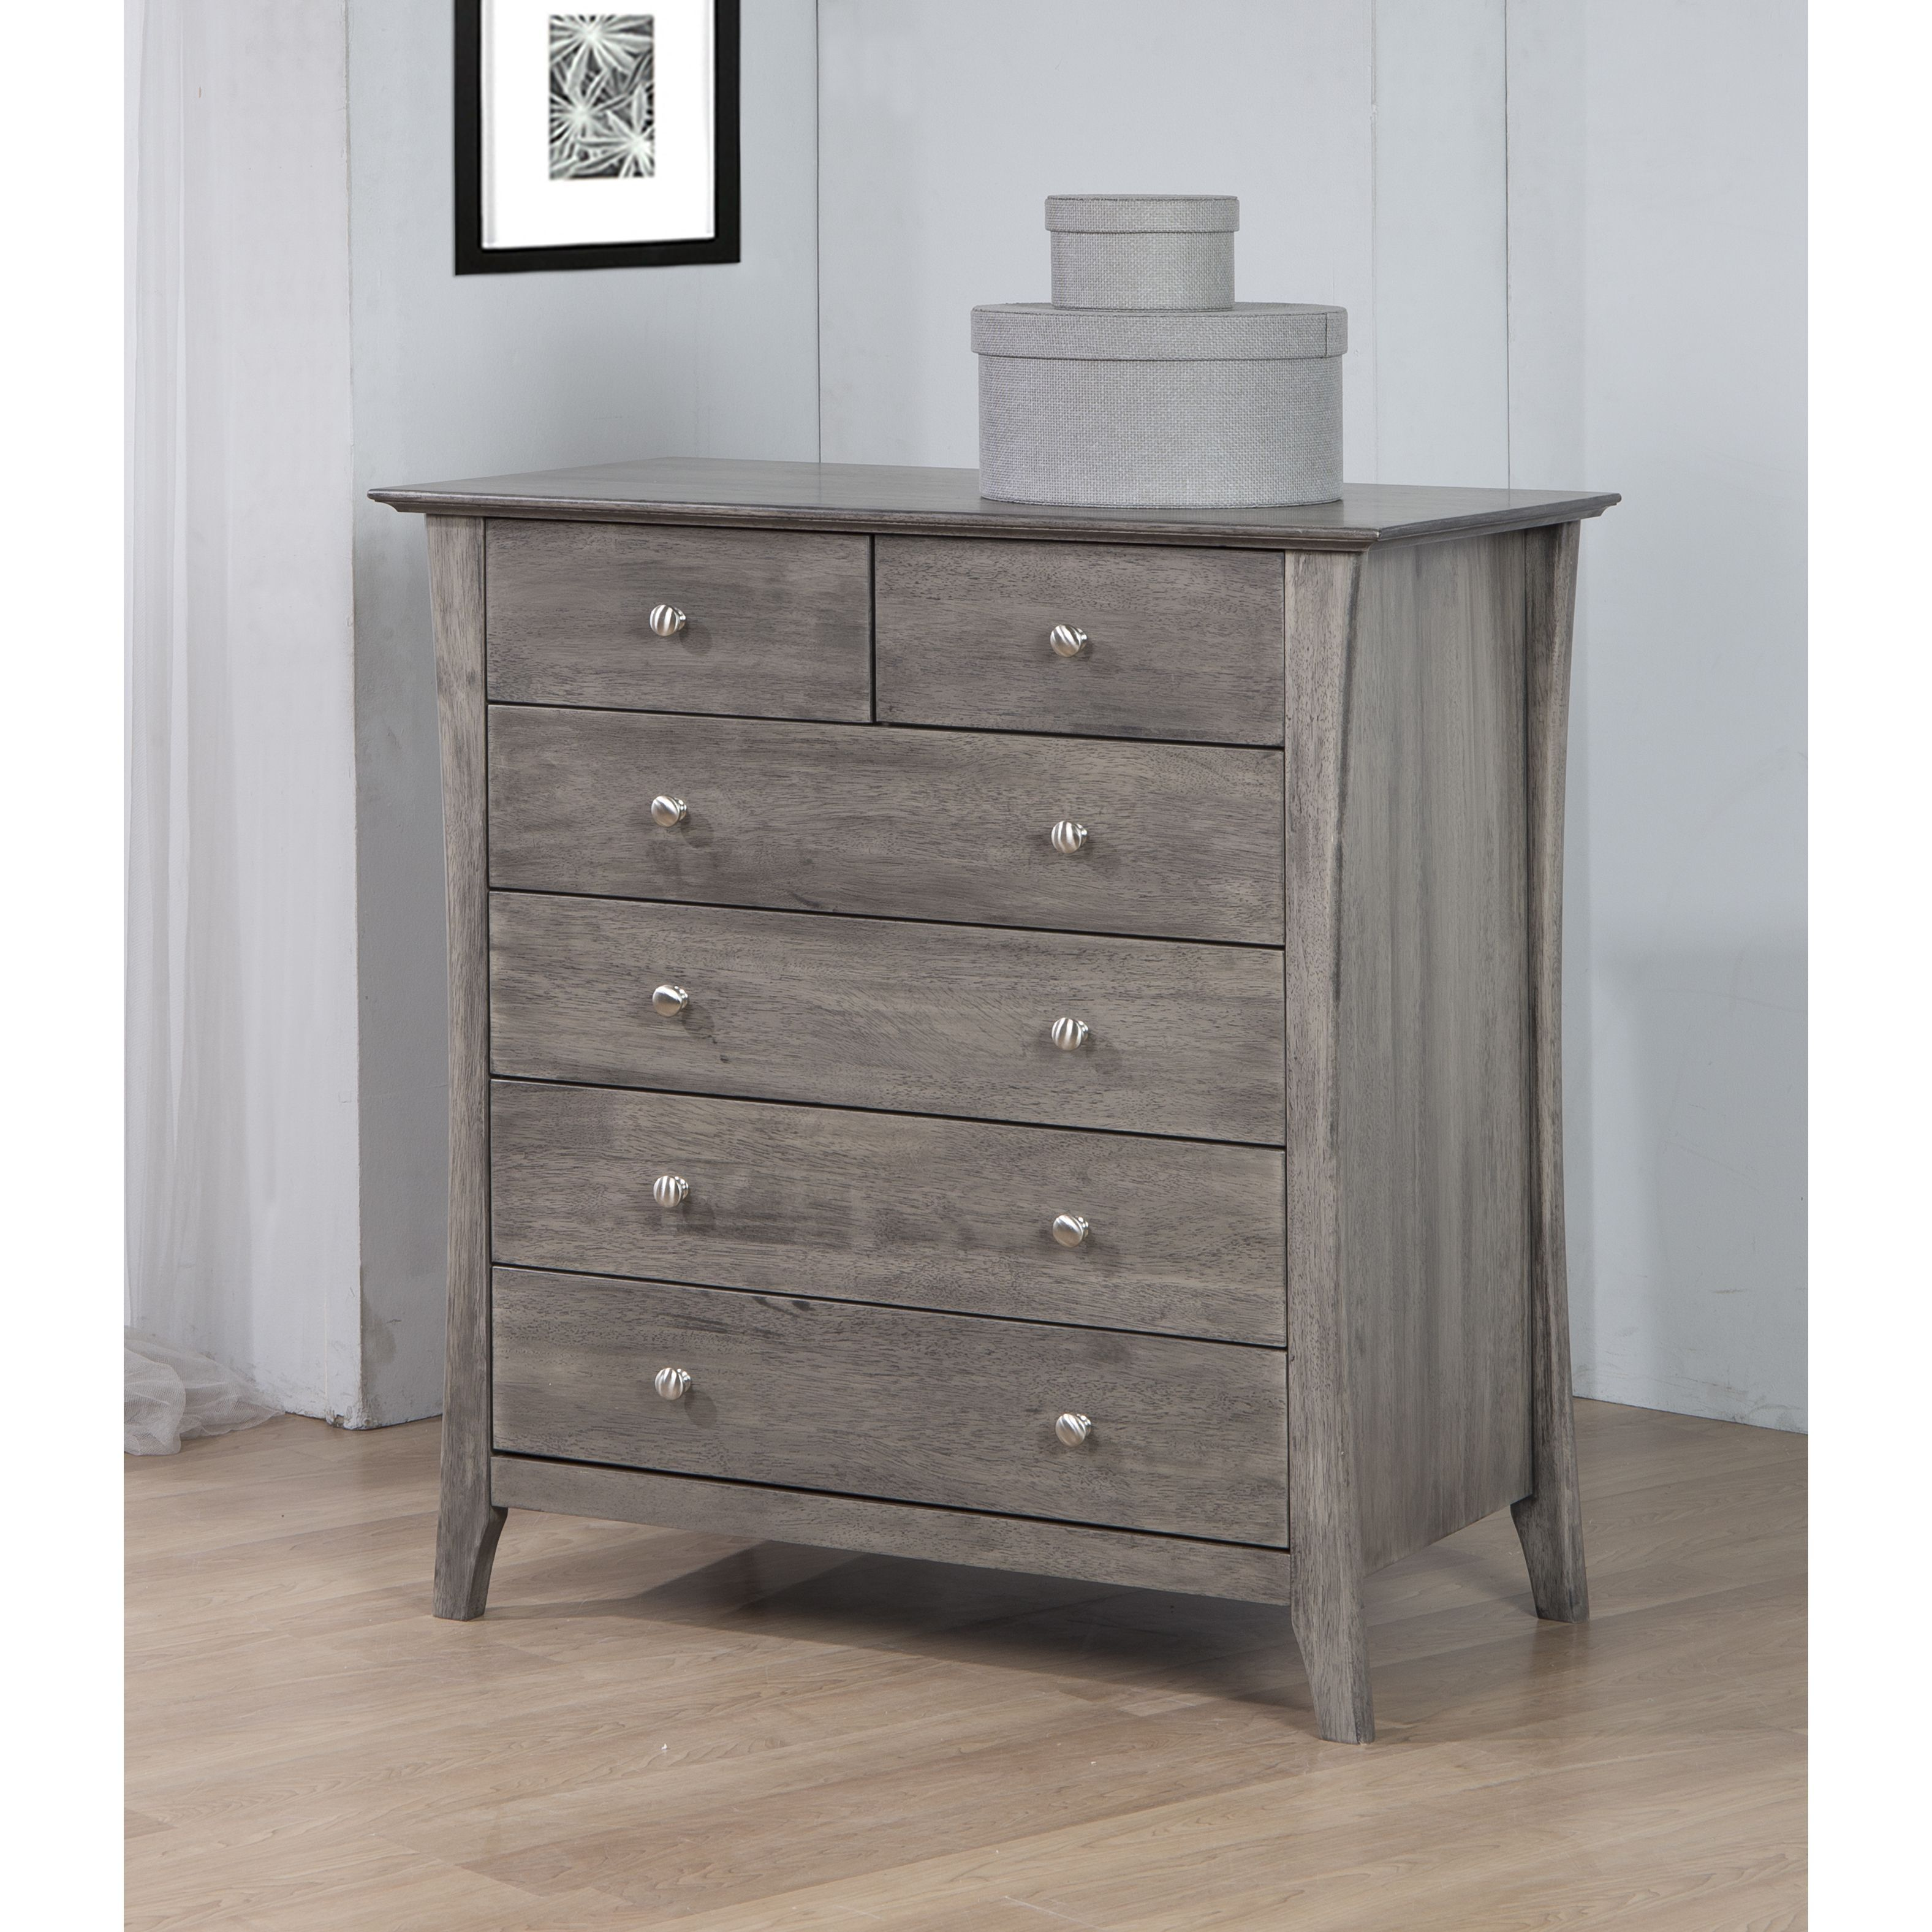 A Modern Take On A Classic Design, This Vermont Stone 6 Drawer Chest  Seamlessly